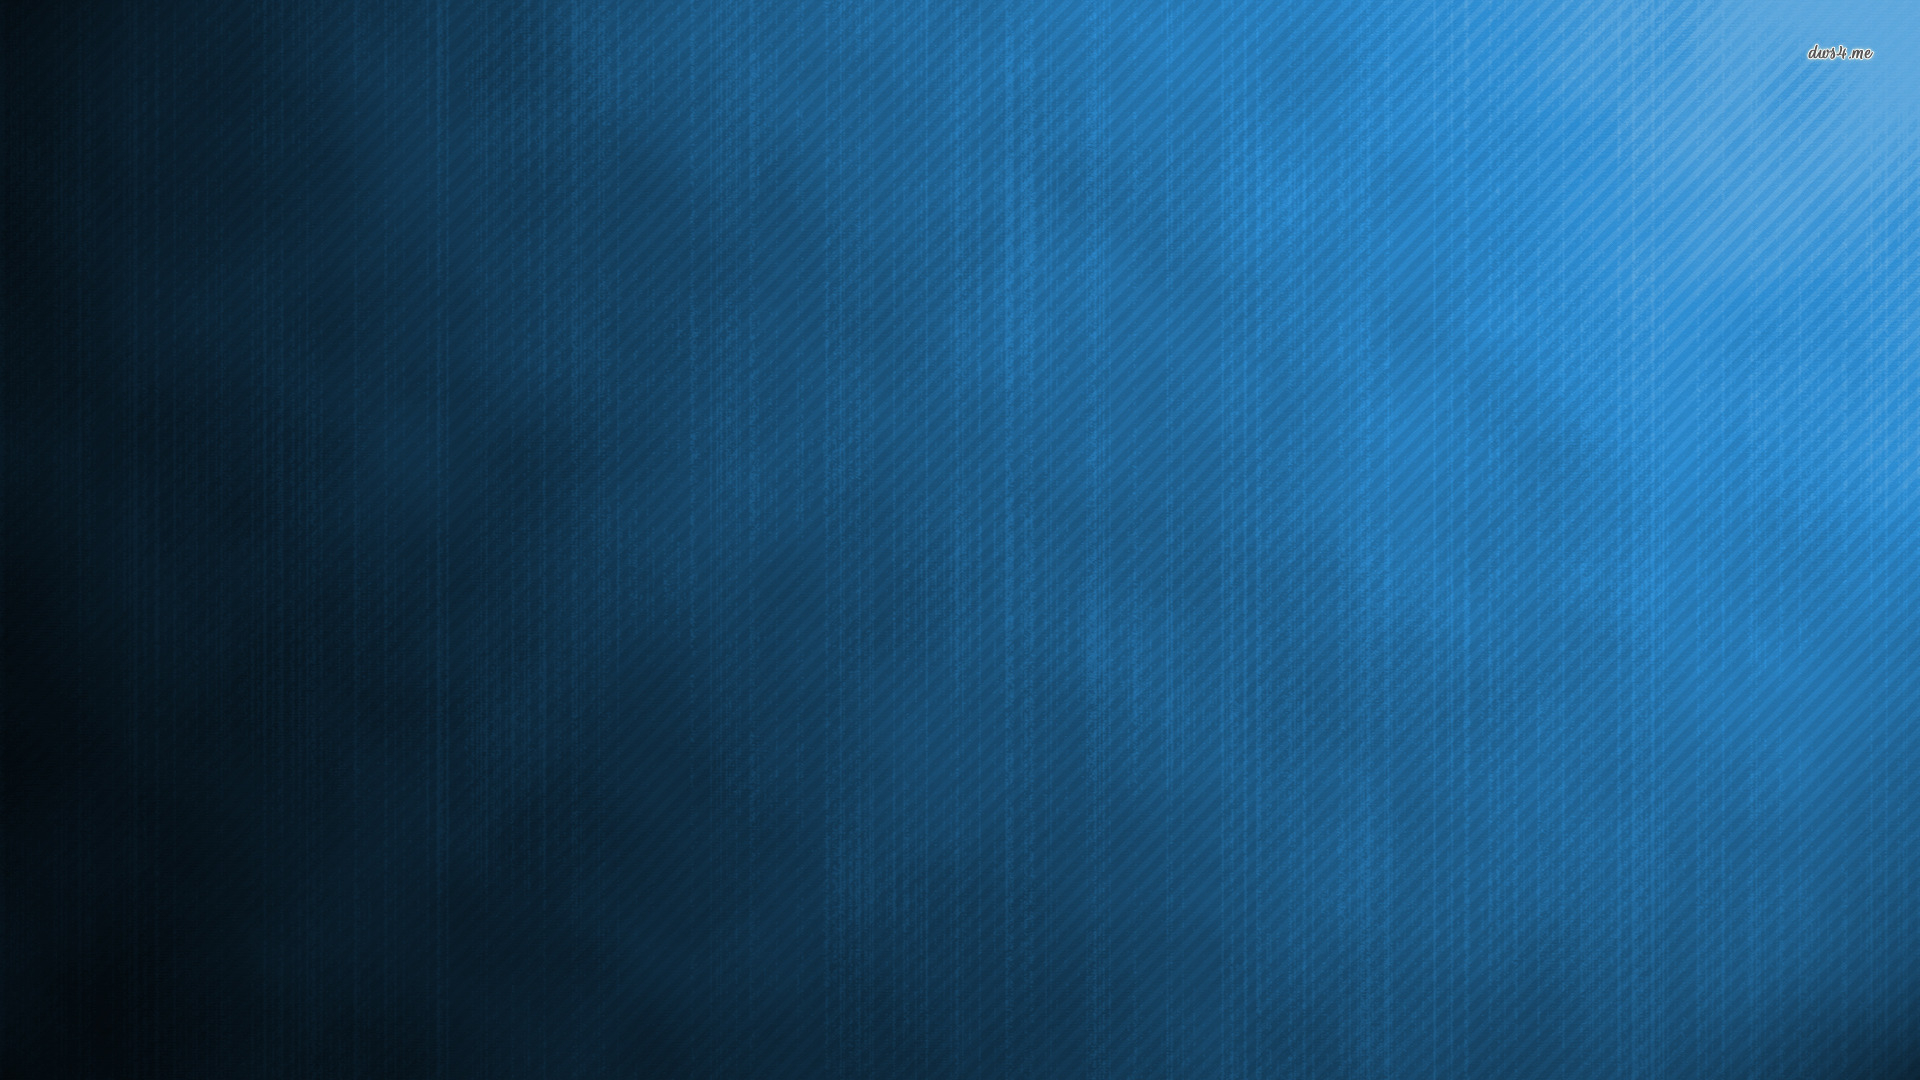 faded lines wallpaper abstract wallpapers blue faded lines wallpaper 1920x1080